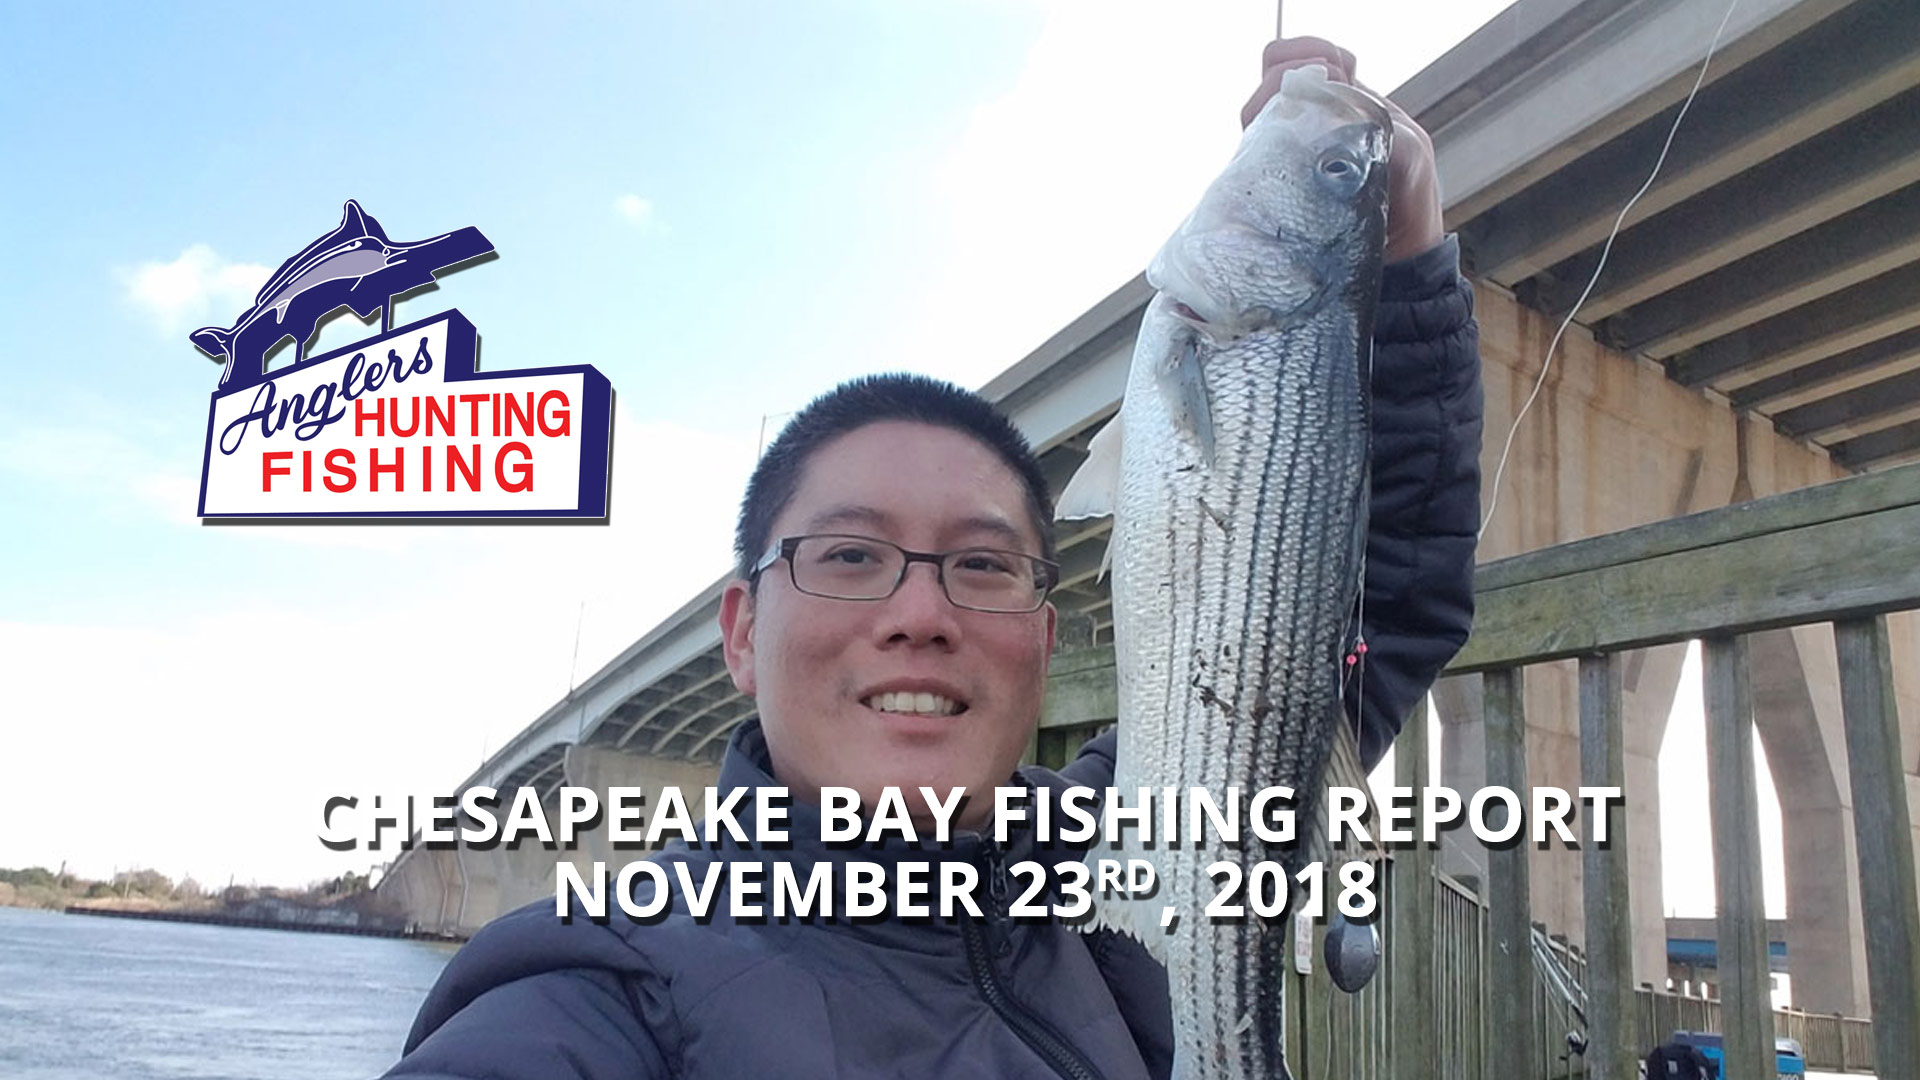 Chesapeake Bay Fishing Report - November 23rd, 2018